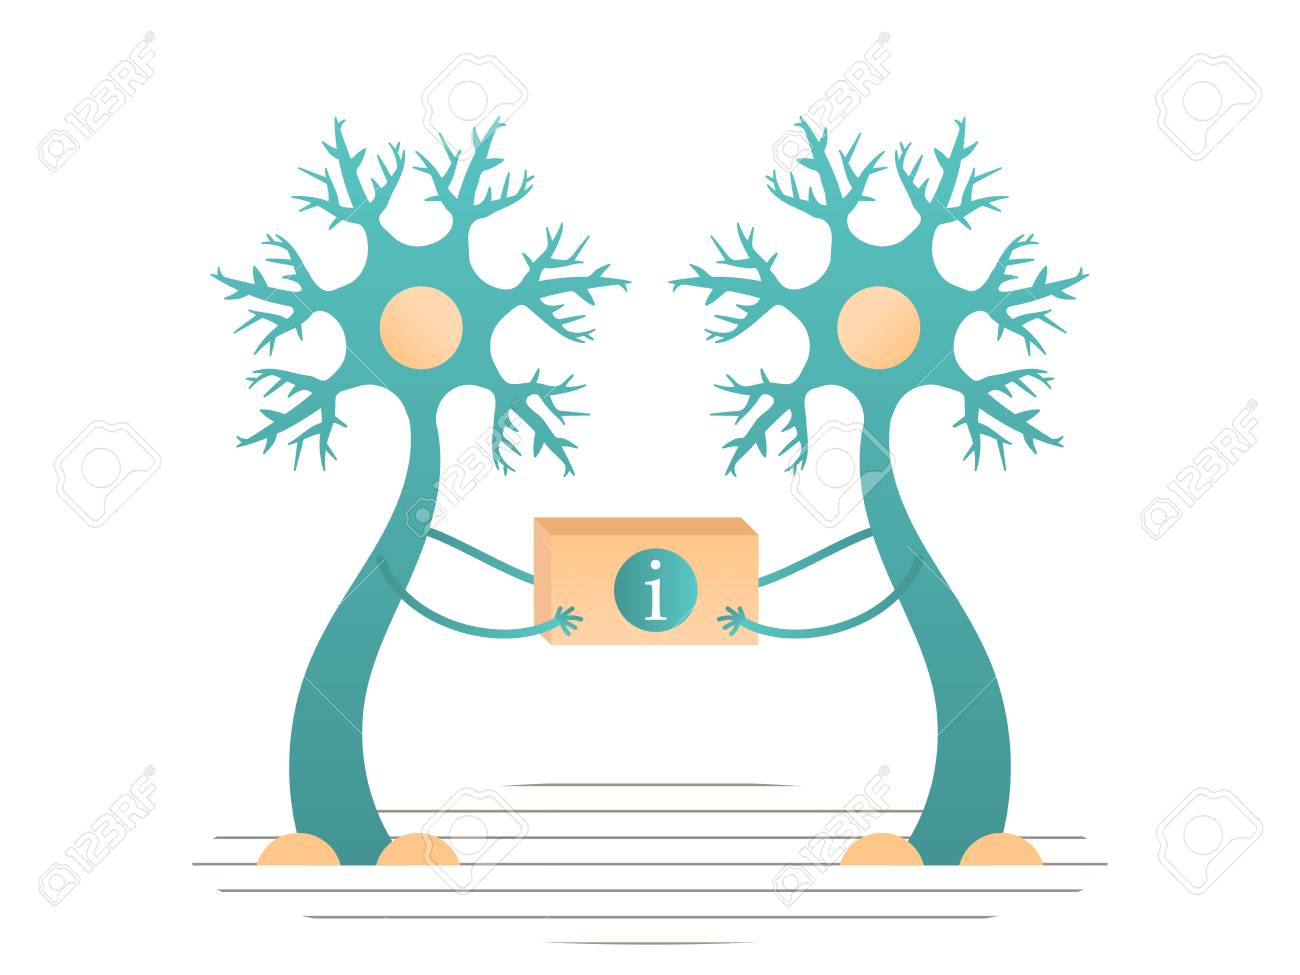 Neurons transmit information to the brain. Vector flat illustration - 126020104